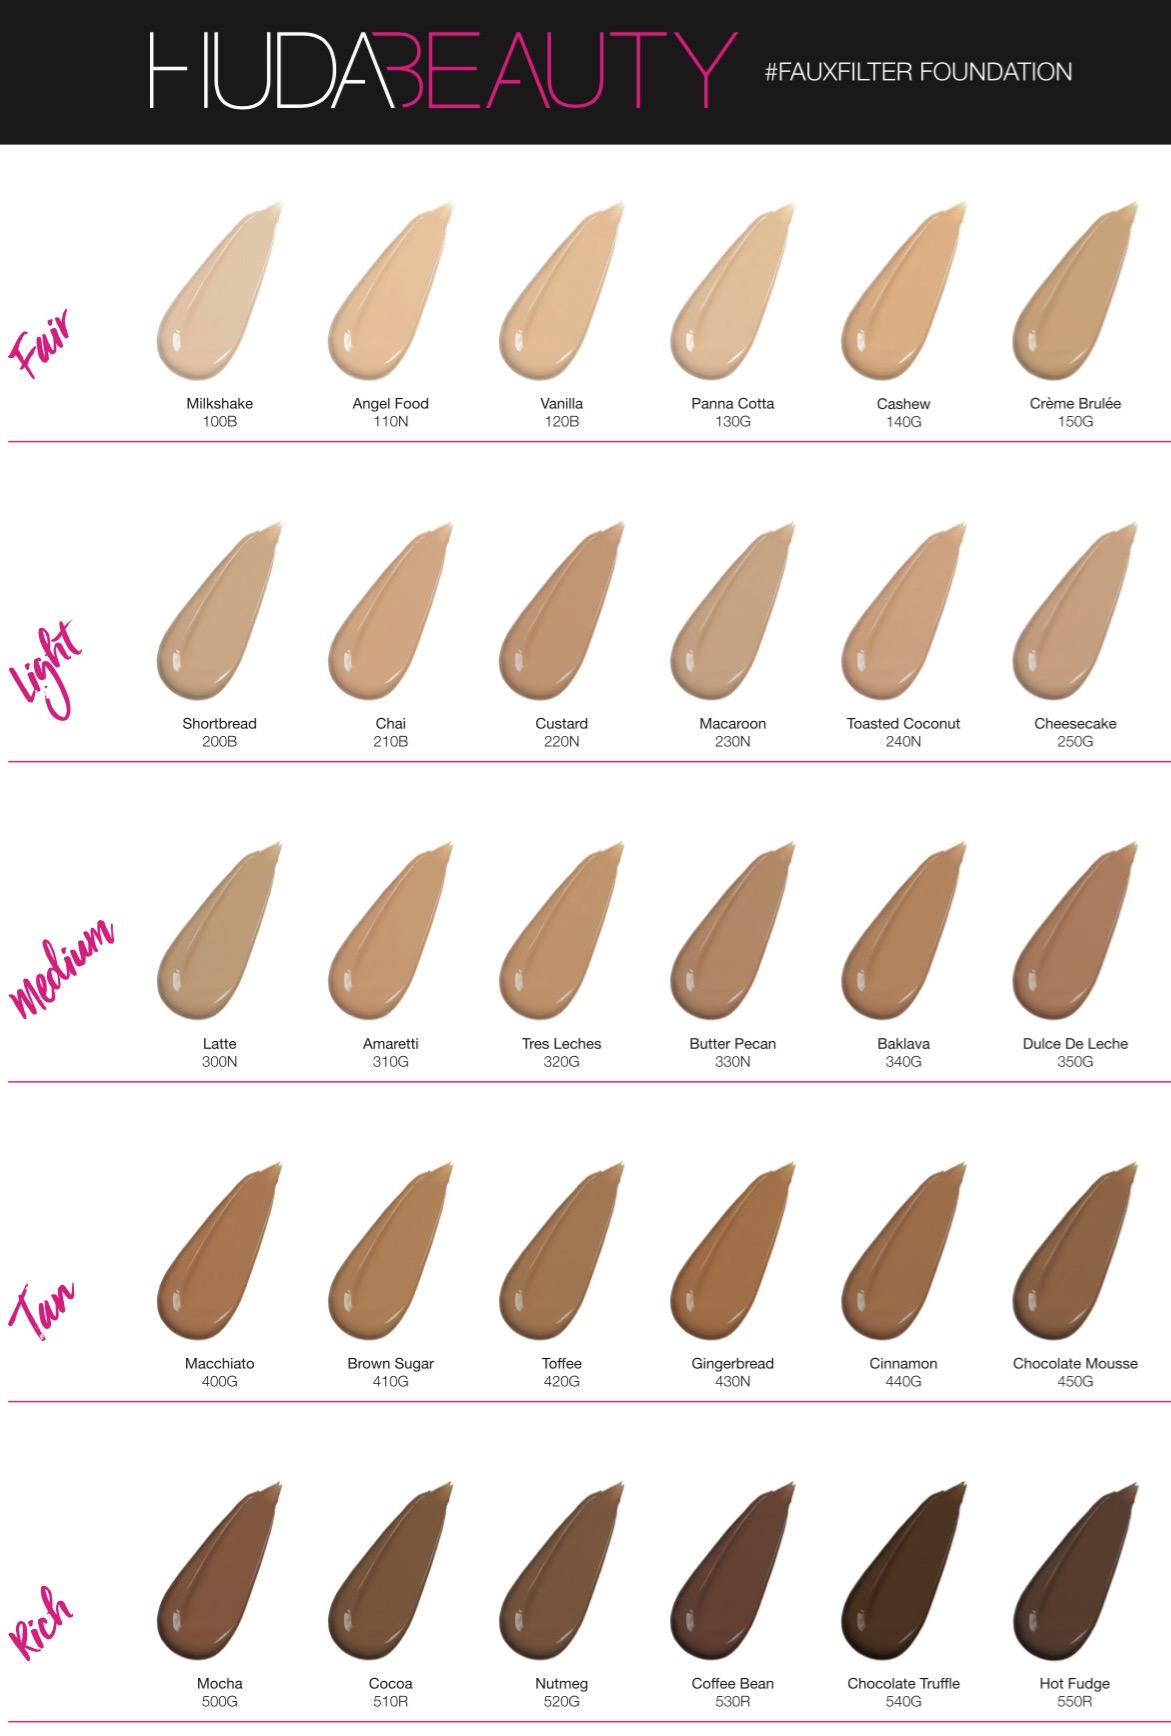 Huda Beauty #FauxFilter Foundation shade swatches